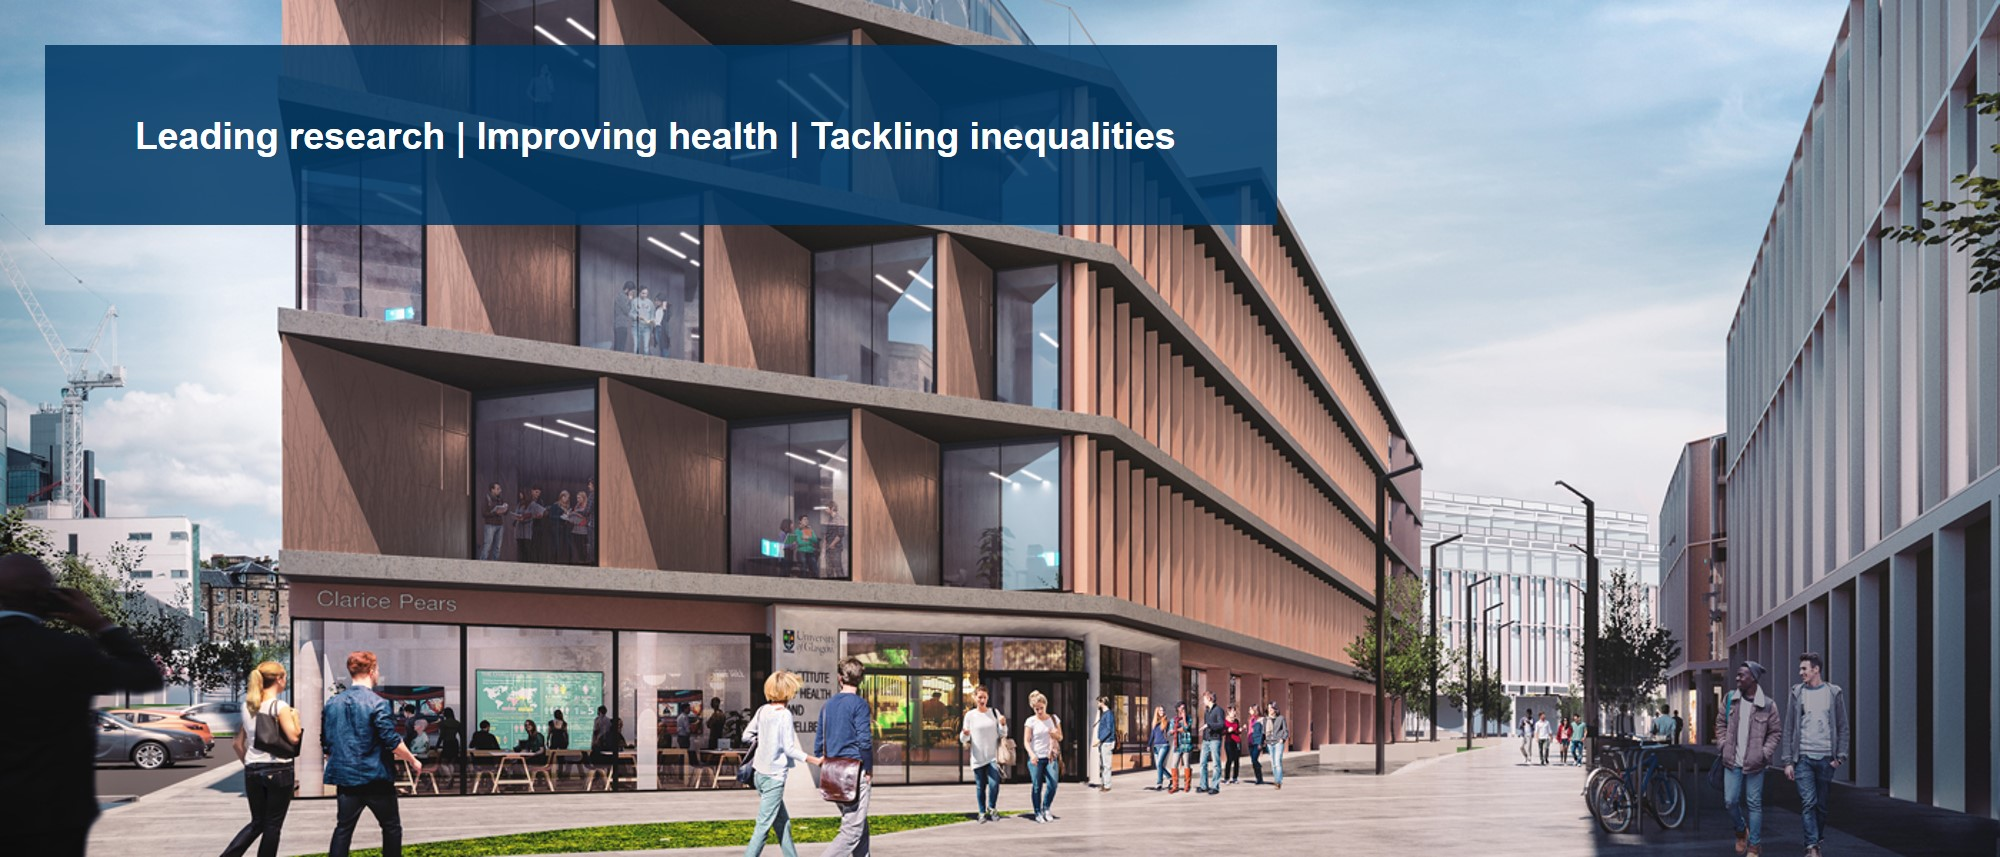 Photo of Clarice Pears Building with text (leading research, improving health, tackling inequalities)